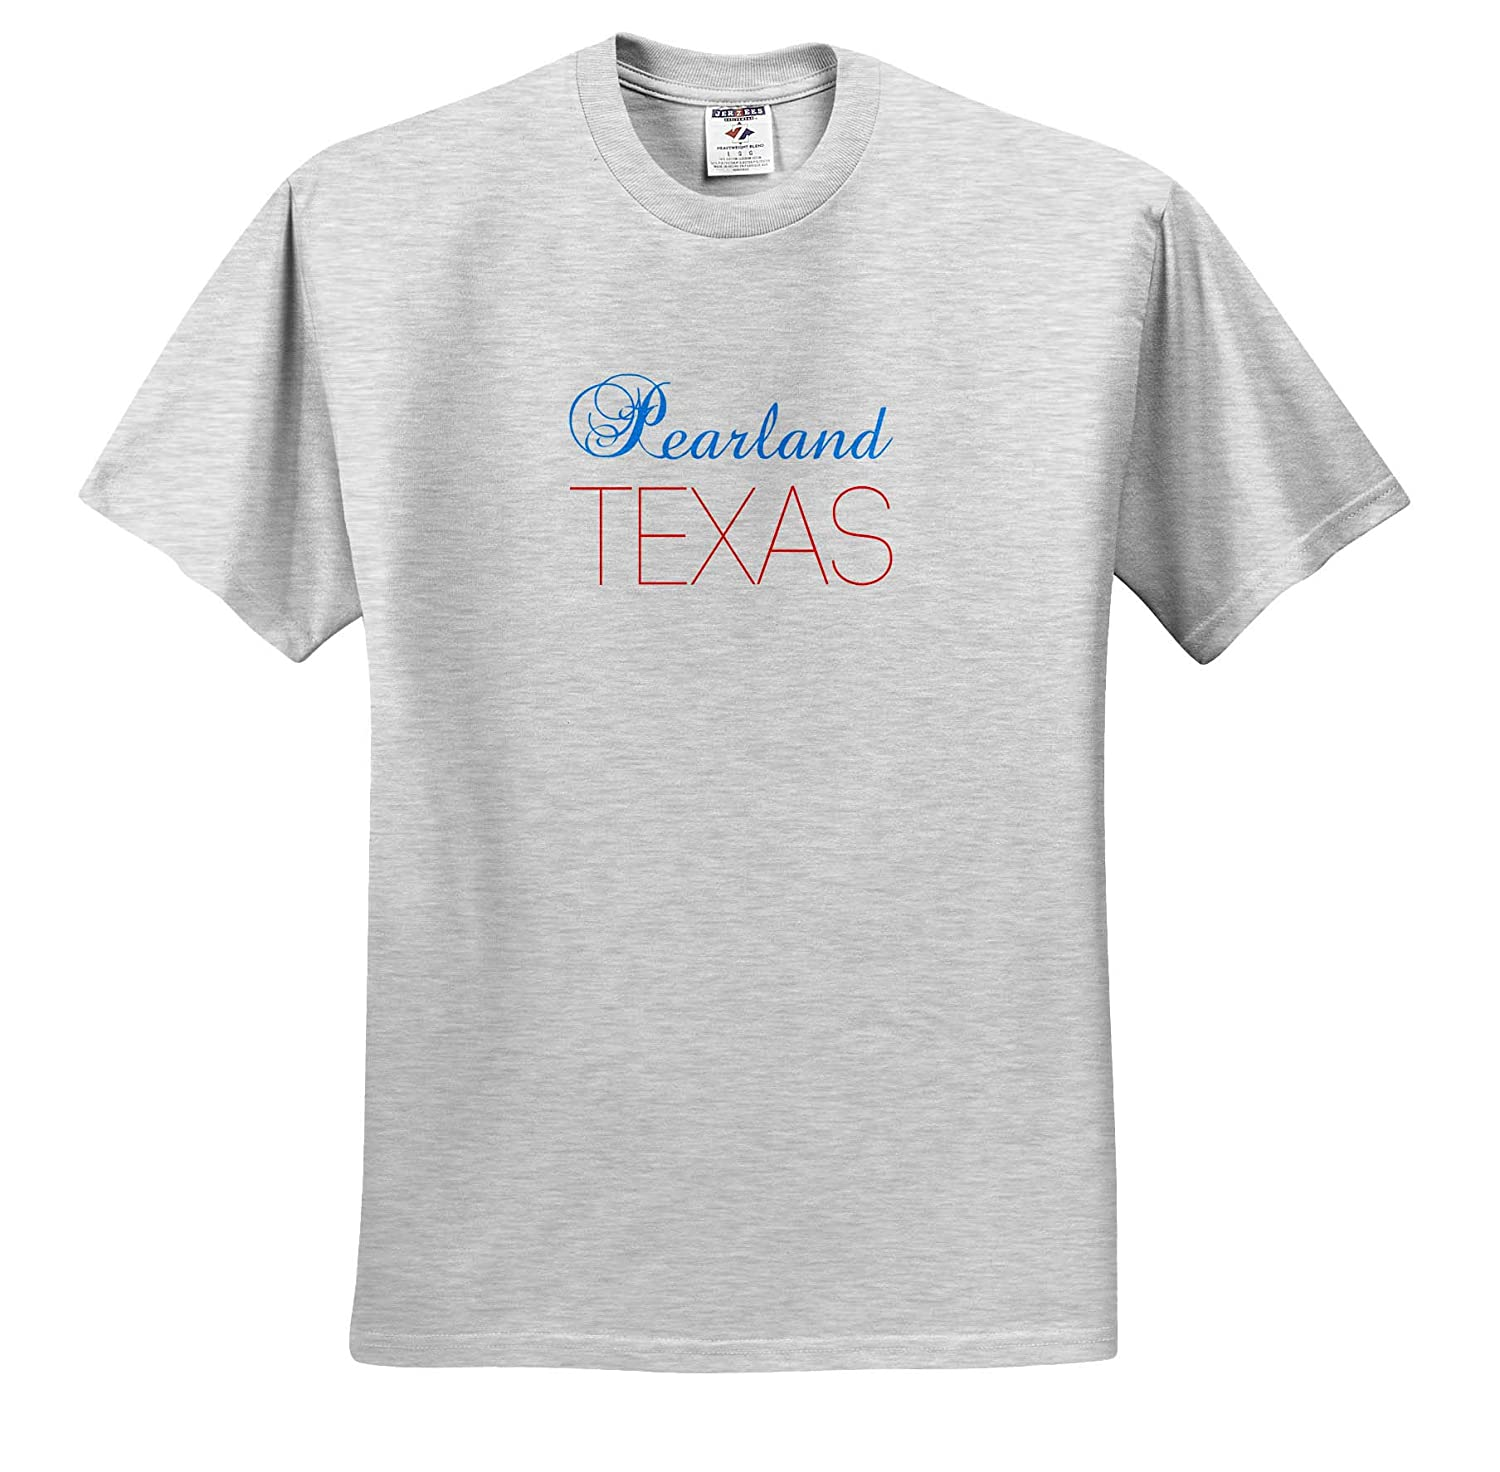 T-Shirts Patriotic Home Town Design Texas red Blue Text Pearland American Cities Texas 3dRose Alexis Design